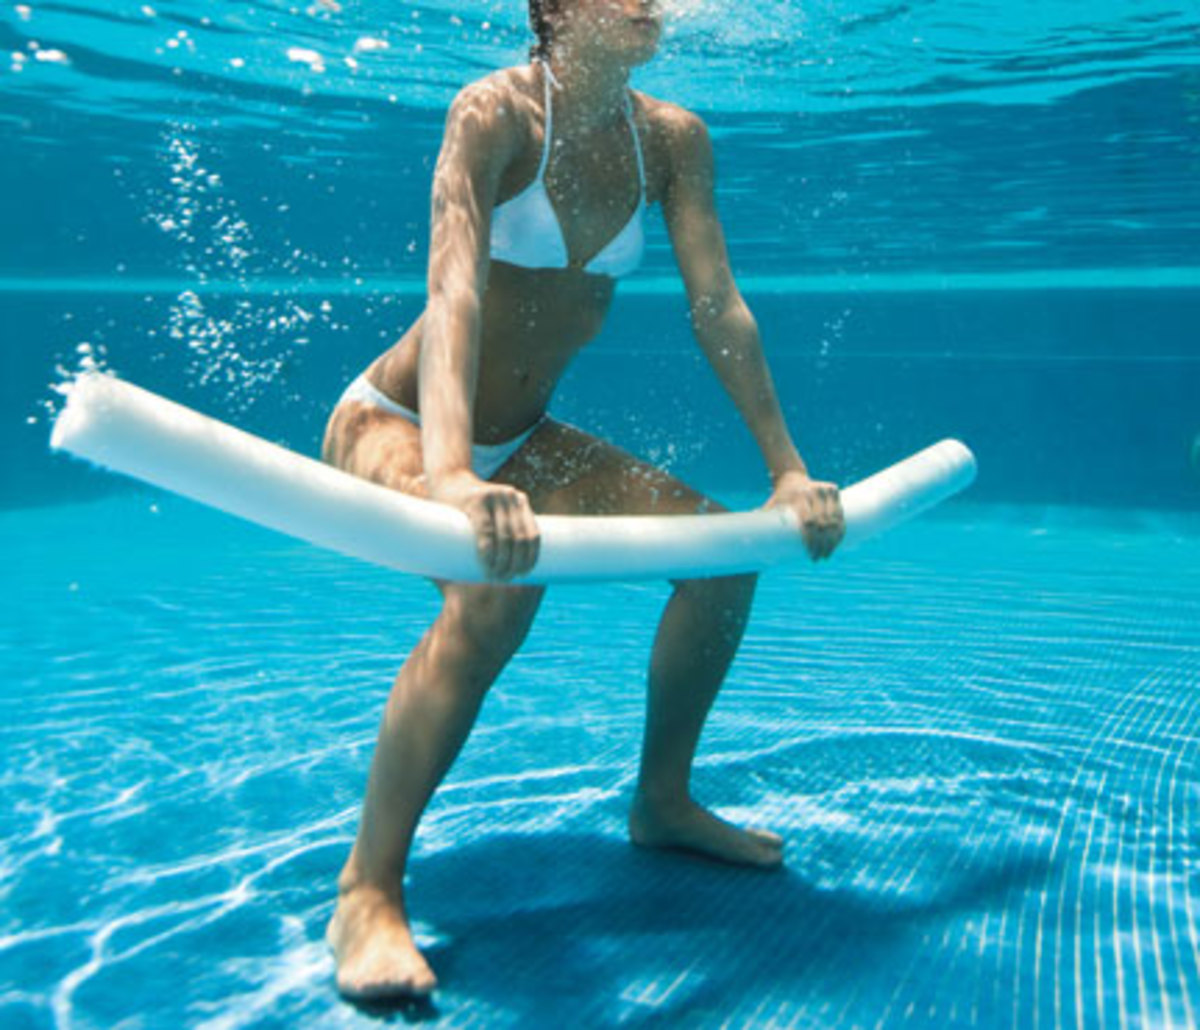 women exercising with a white pool noodle underwater in a white bikini